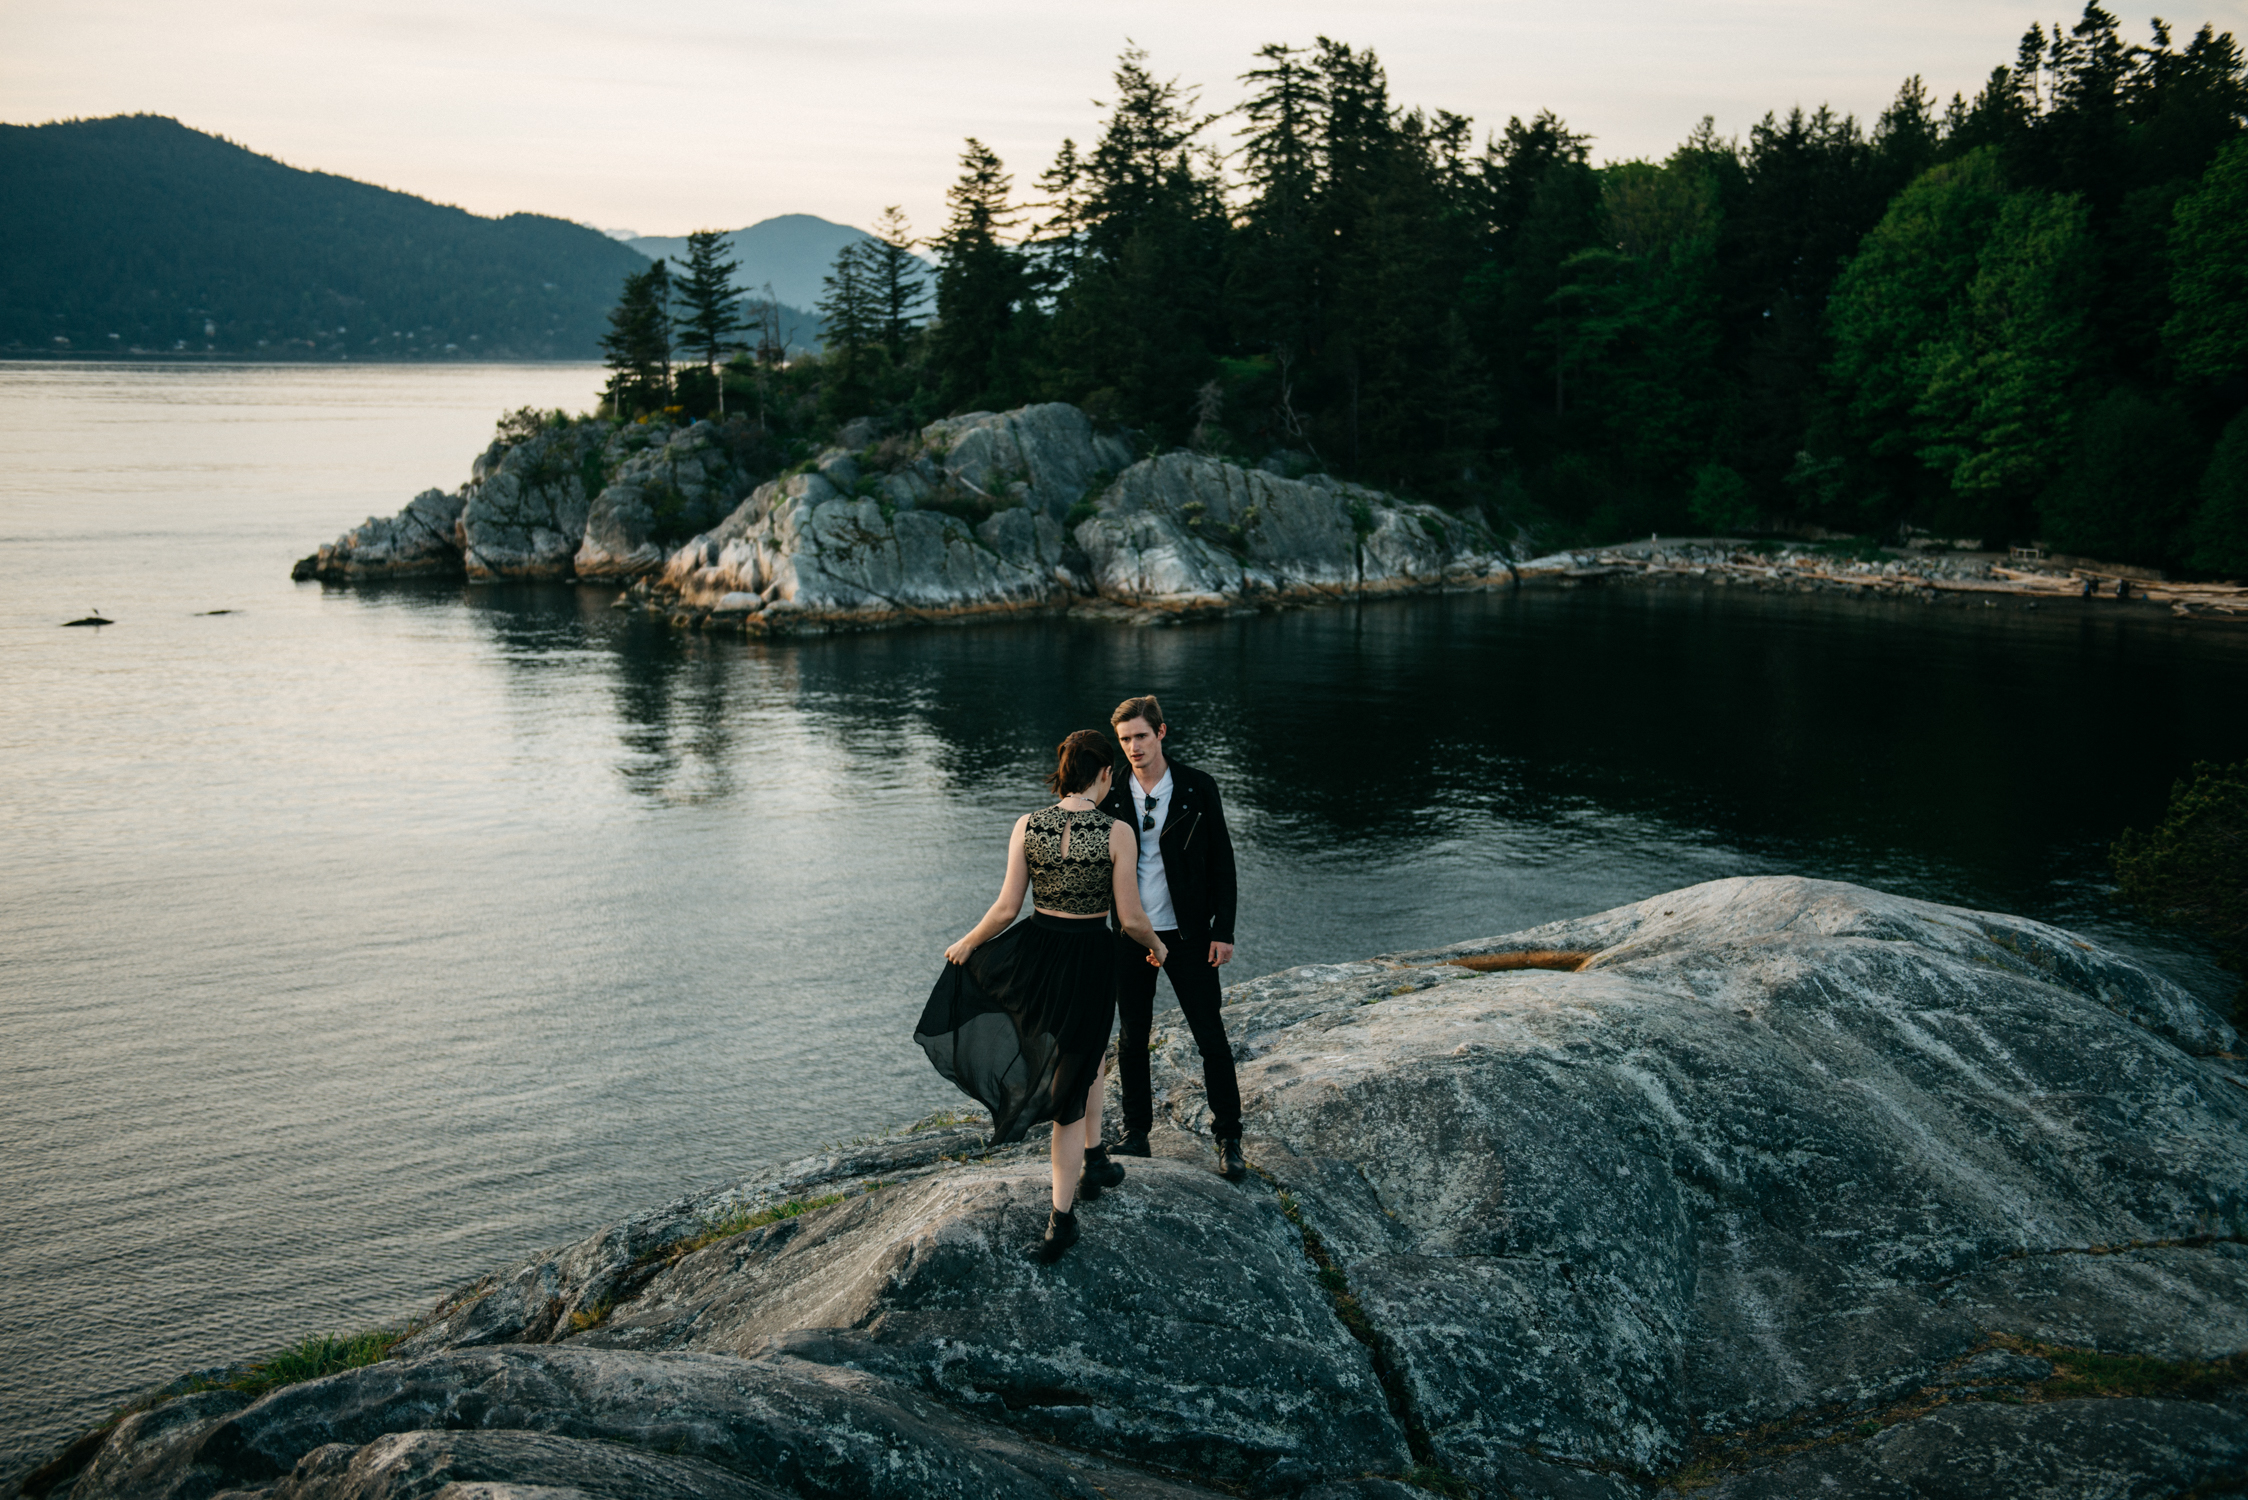 016_whytecliff_vancouver_bc_engagement.jpg